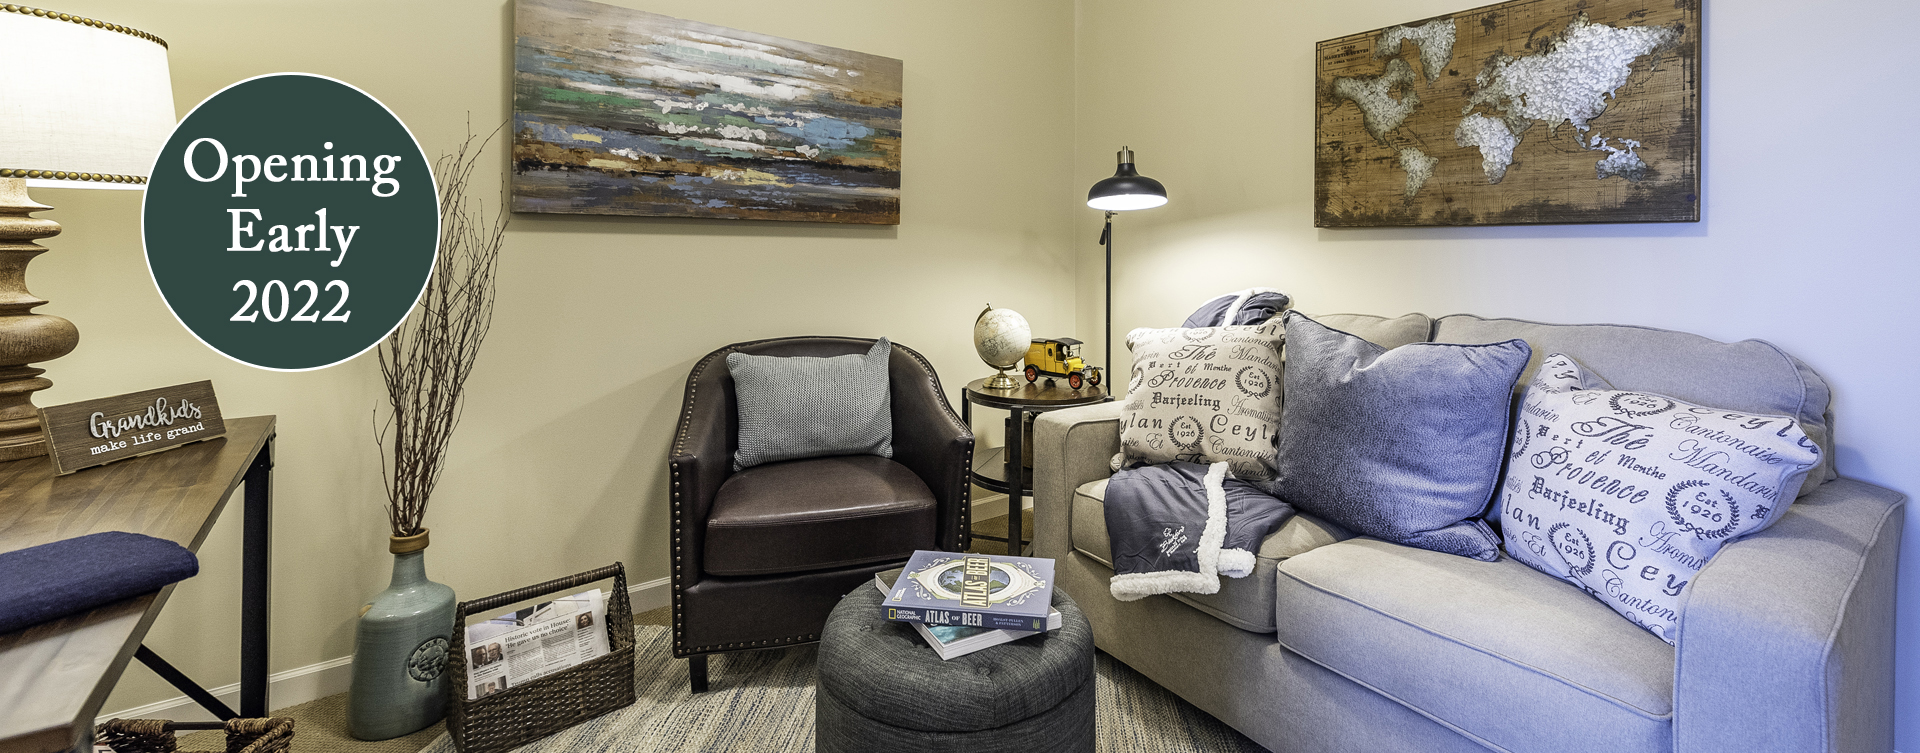 Enjoy senior friendly amenities, personal climate control and security in an apartment at Bickford of Chesapeake